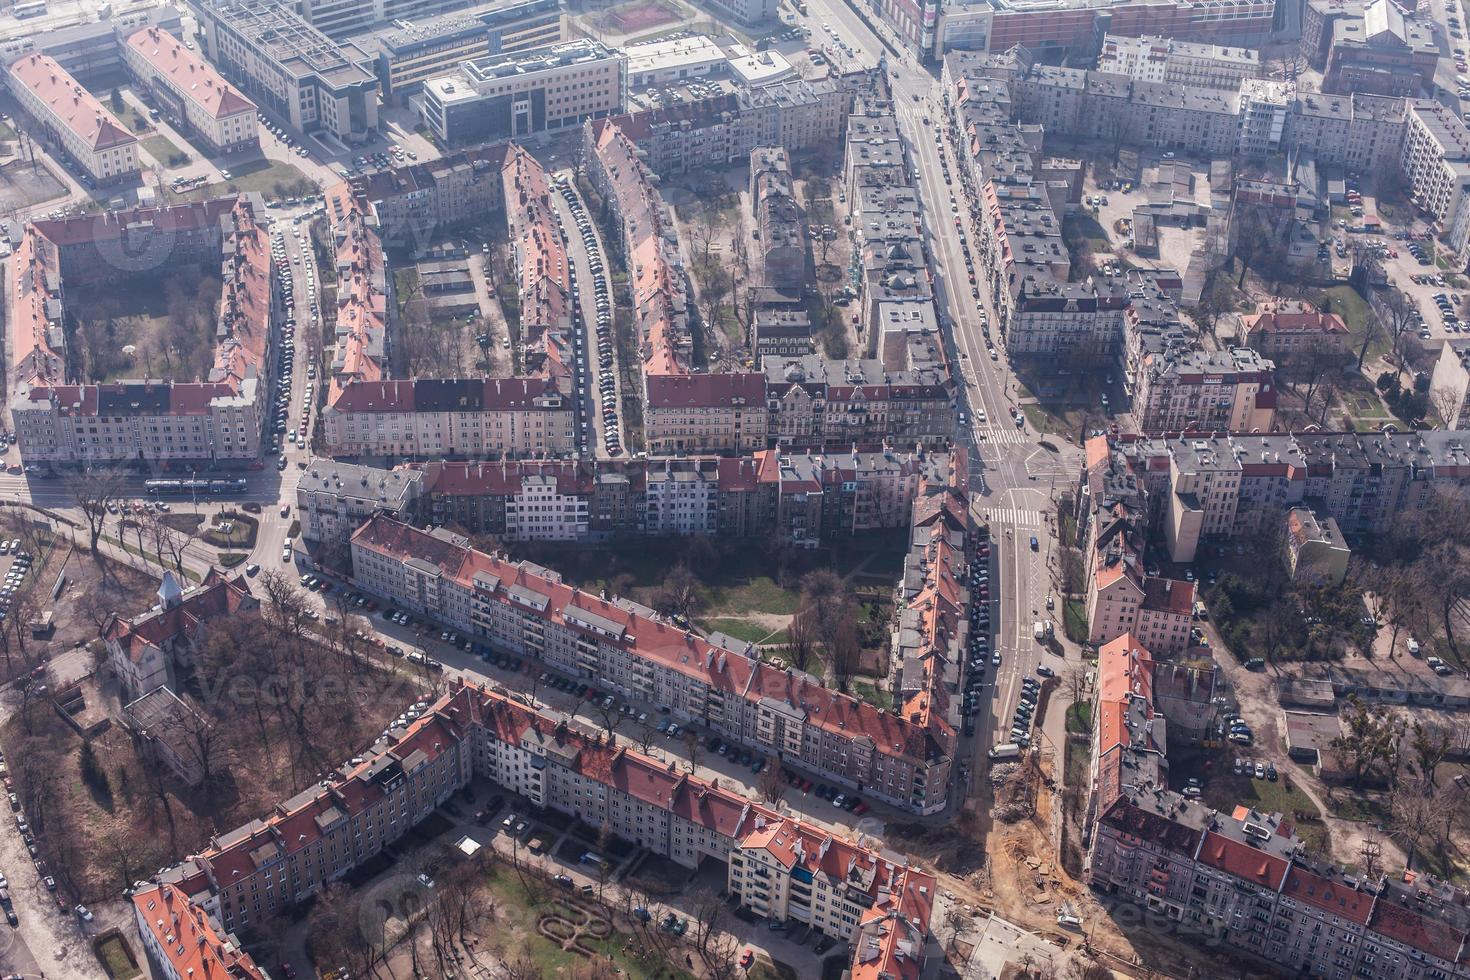 aerial view of Wroclaw city center photo